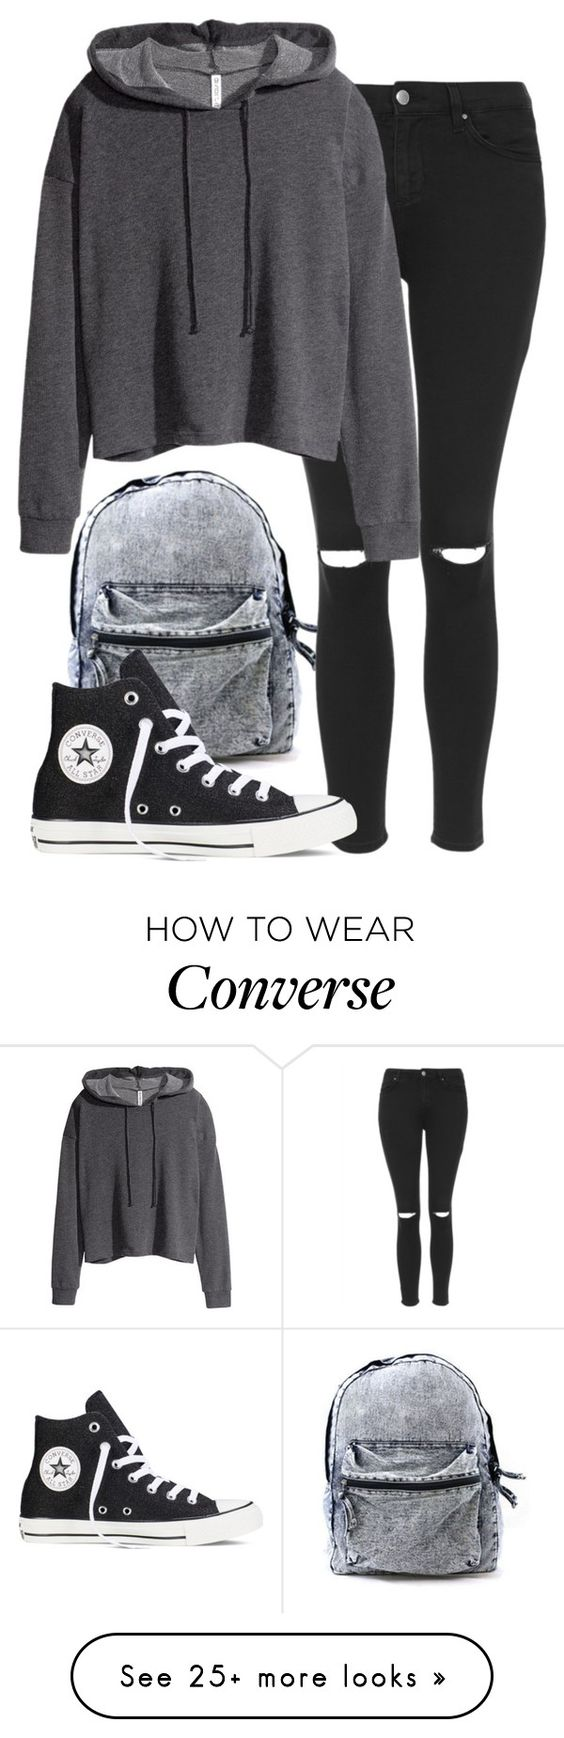 """Sans titre #249"" by sara-benhamida on Polyvore featuring Topshop, H&M and Converse"